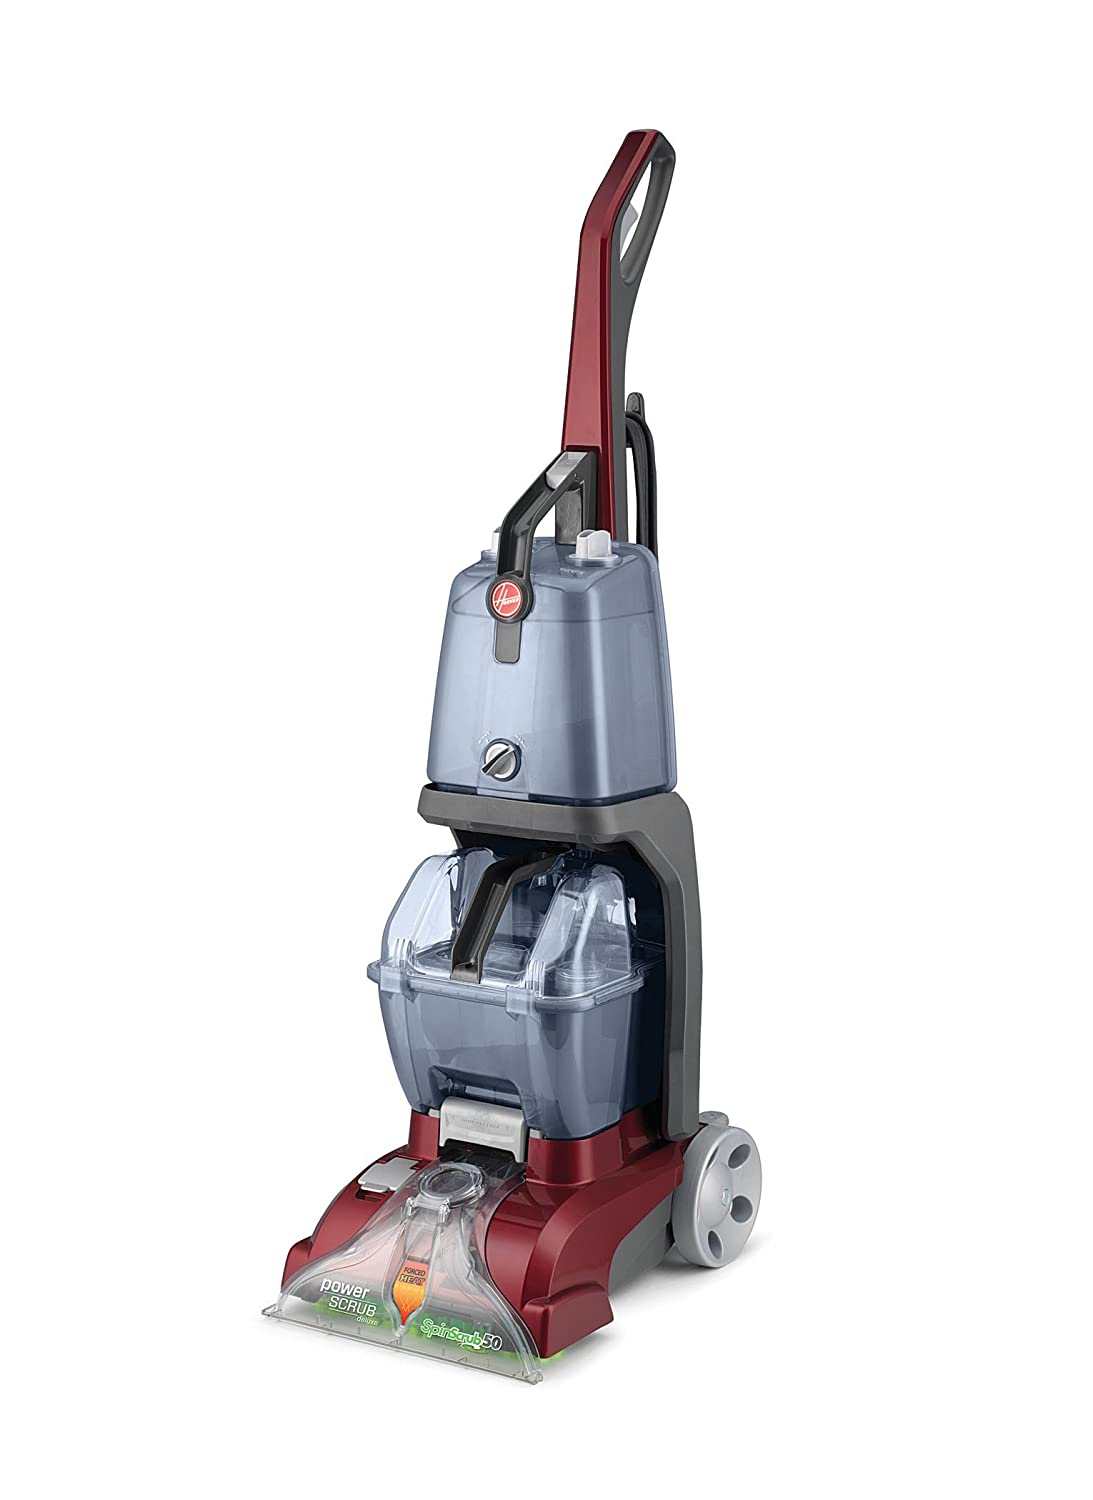 Perfect Amazon.com: Hoover FH50150 Carpet Basics Power Scrub Deluxe Carpet Cleaner:  Home U0026 Kitchen